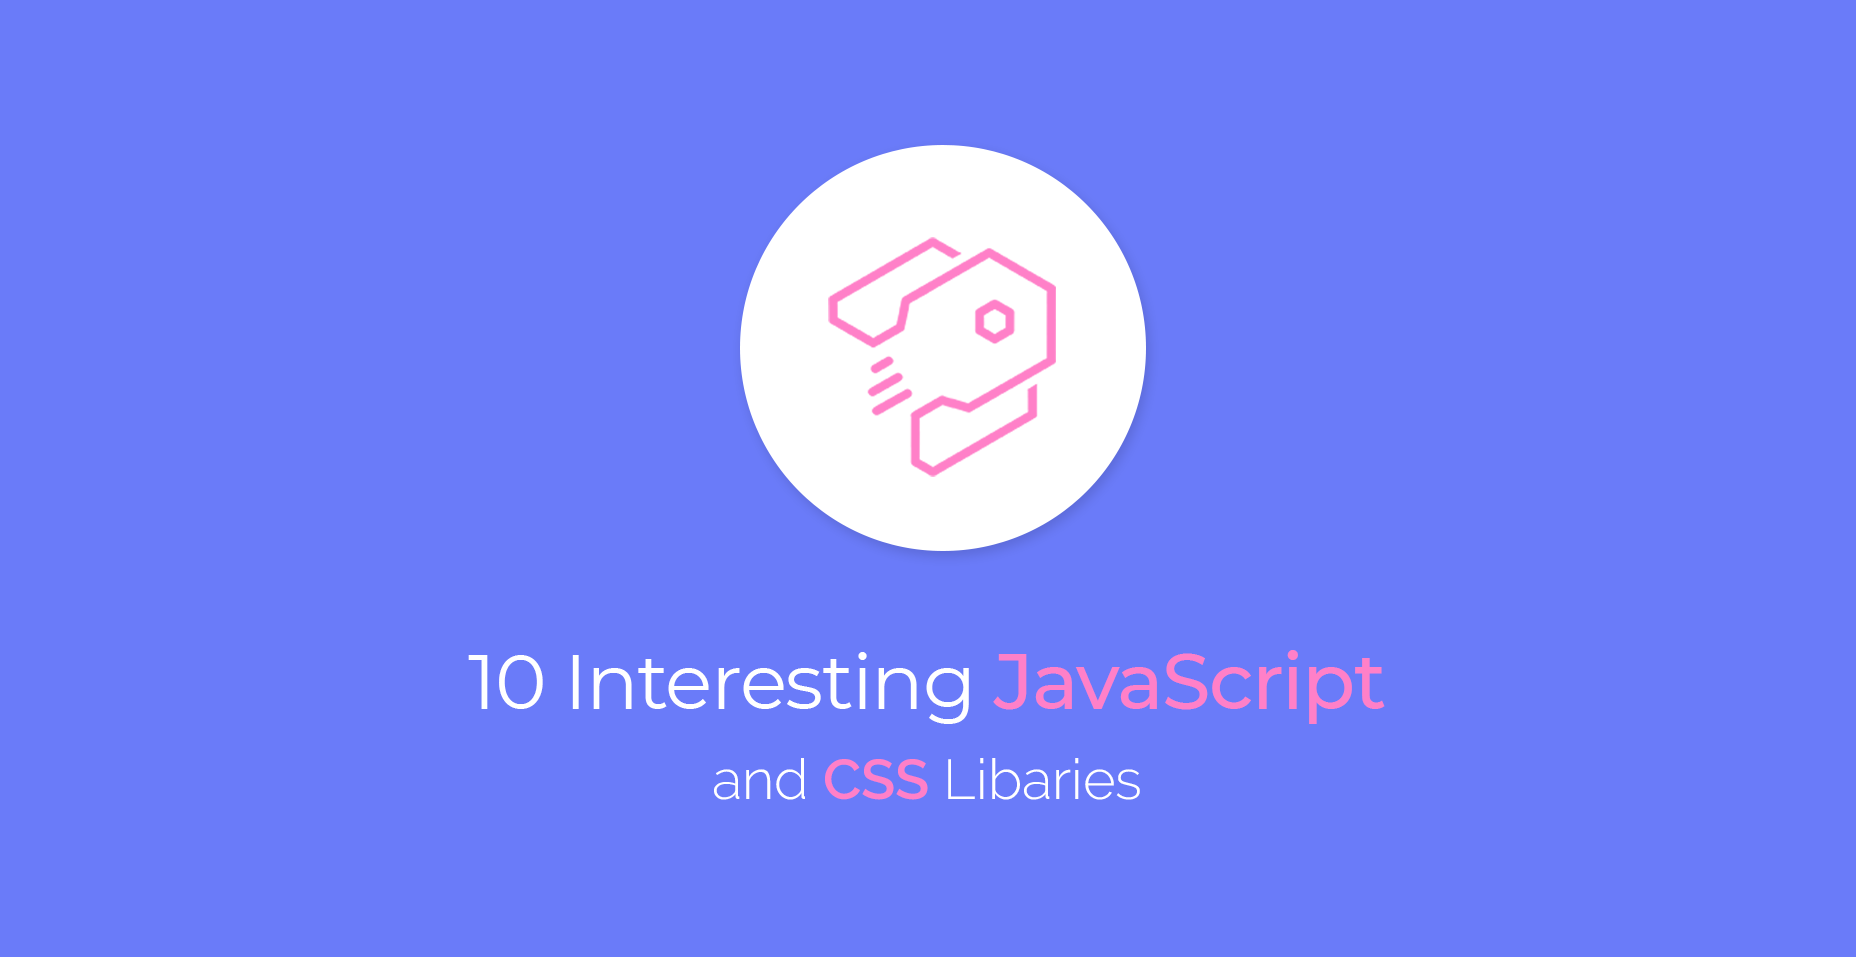 10 Interesting JavaScript and CSS libraries for October 2018